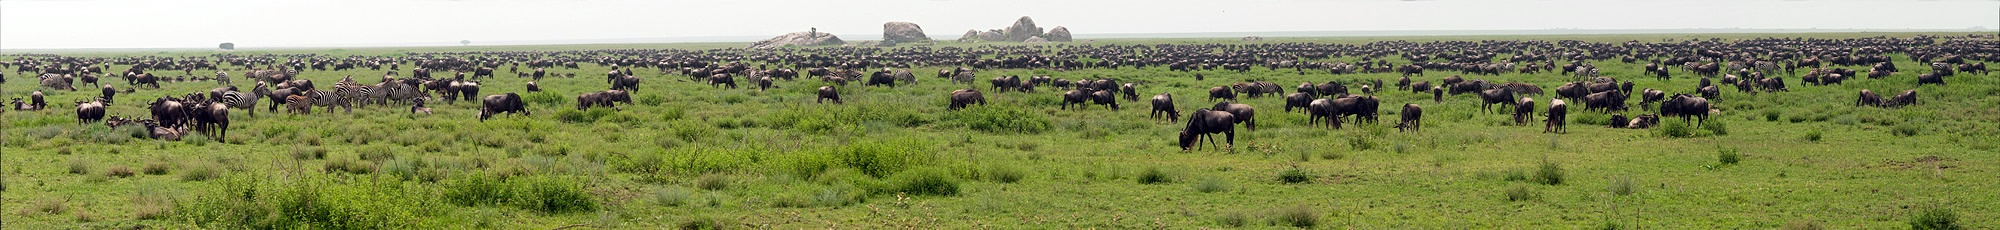 Tanzania, The Great Migration